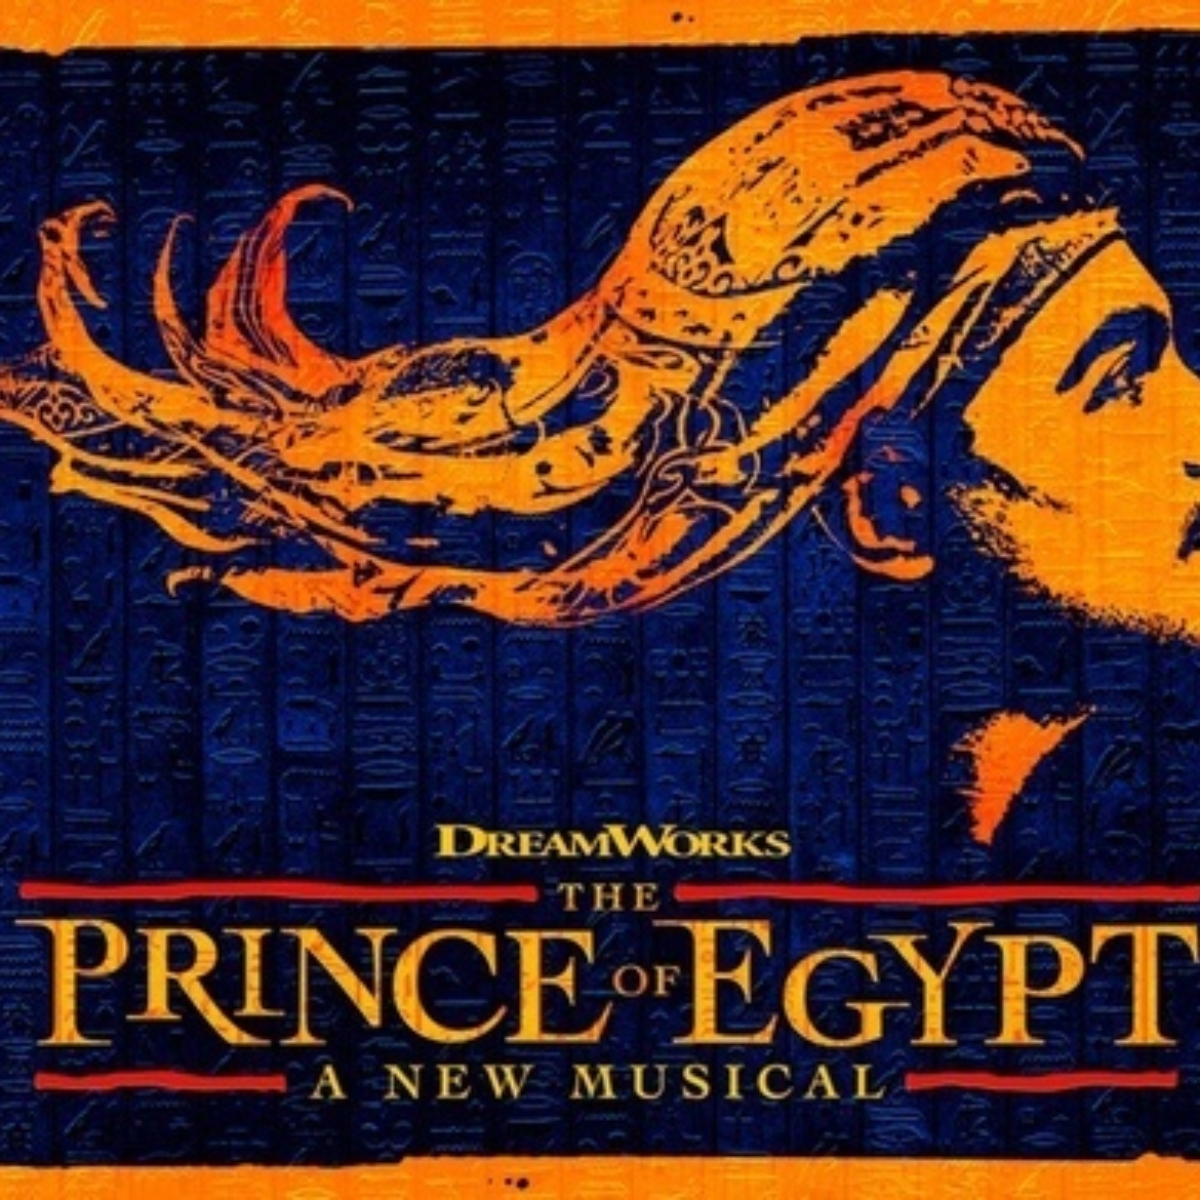 The Prince of Egypt Images